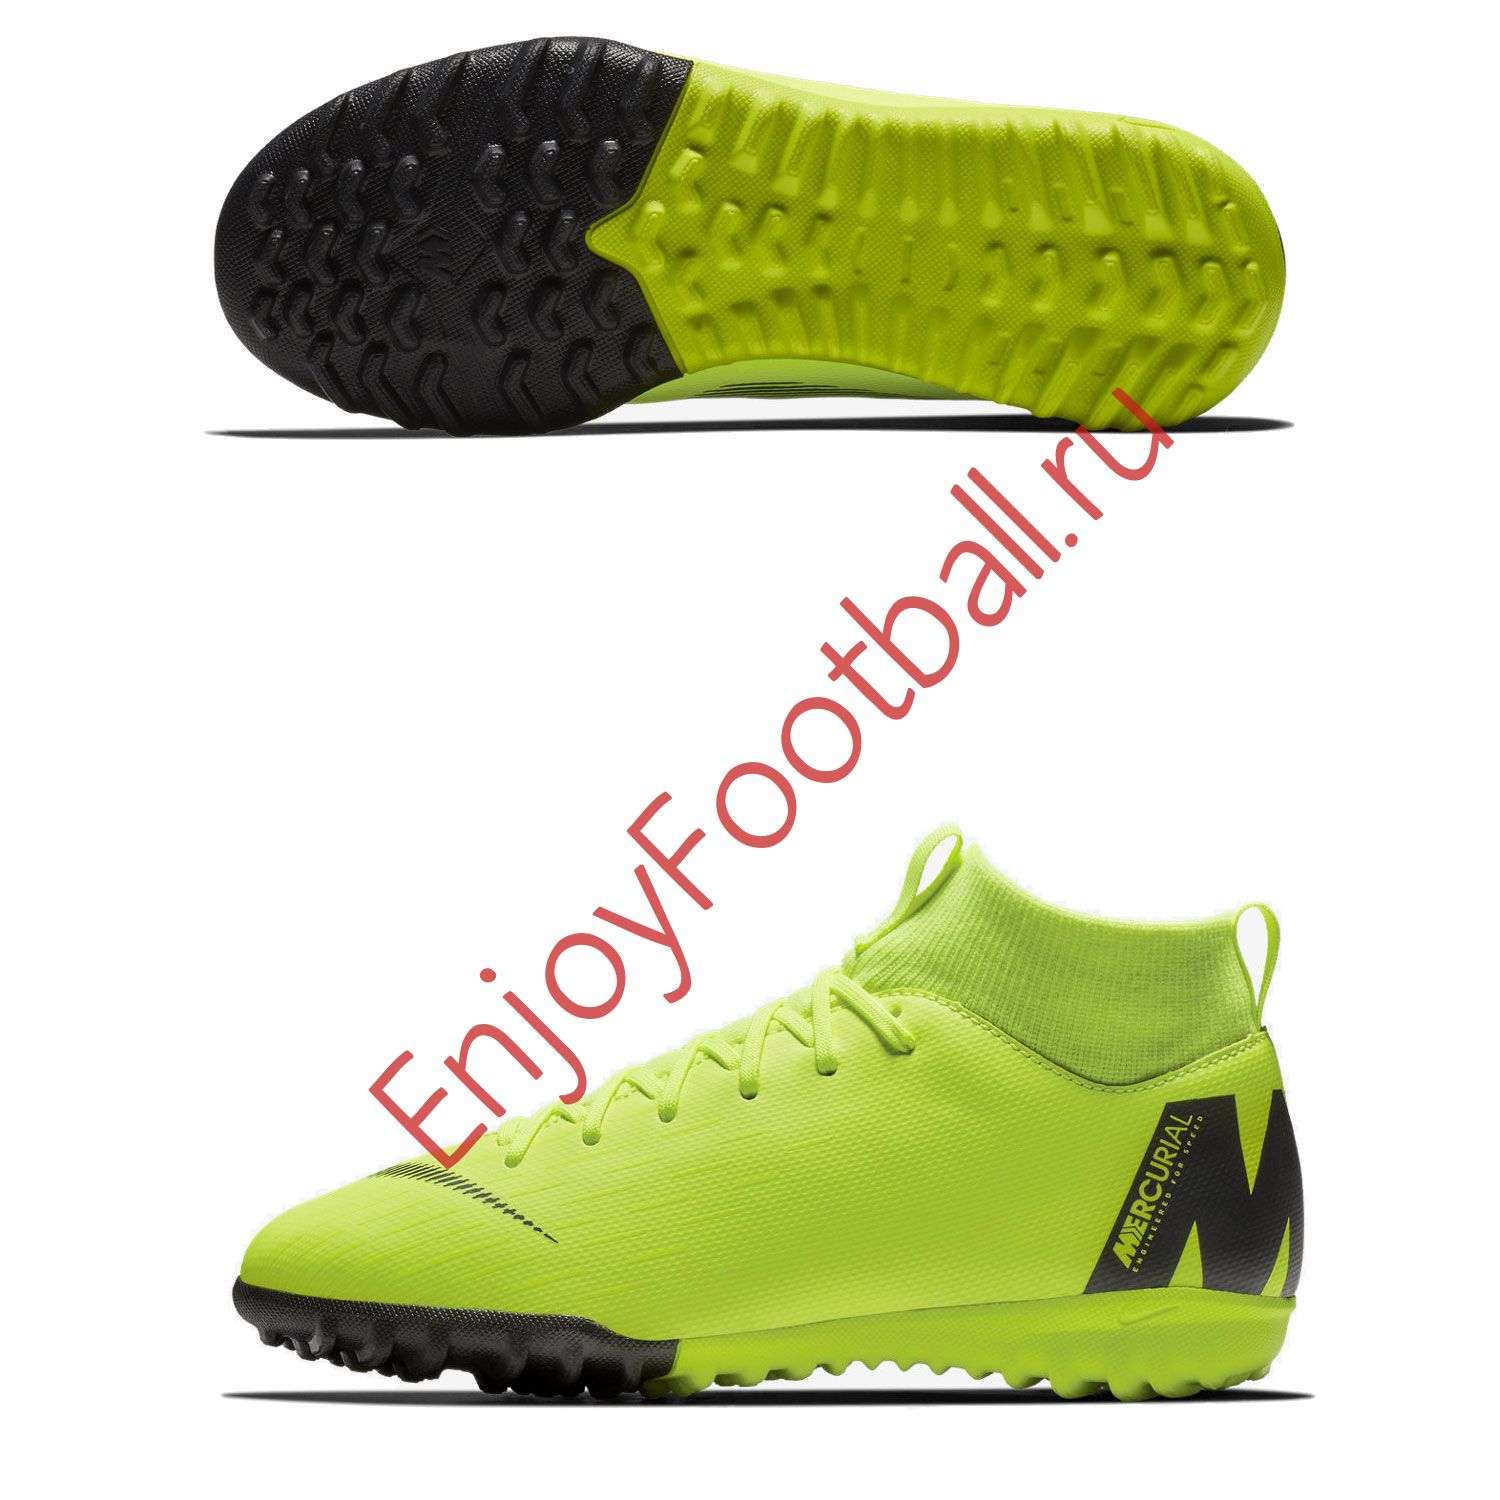 4f8053e9075e Детские шиповки NIKE SUPERFLYX VI ACADEMY GS TF AH7344-701 JR купить ...